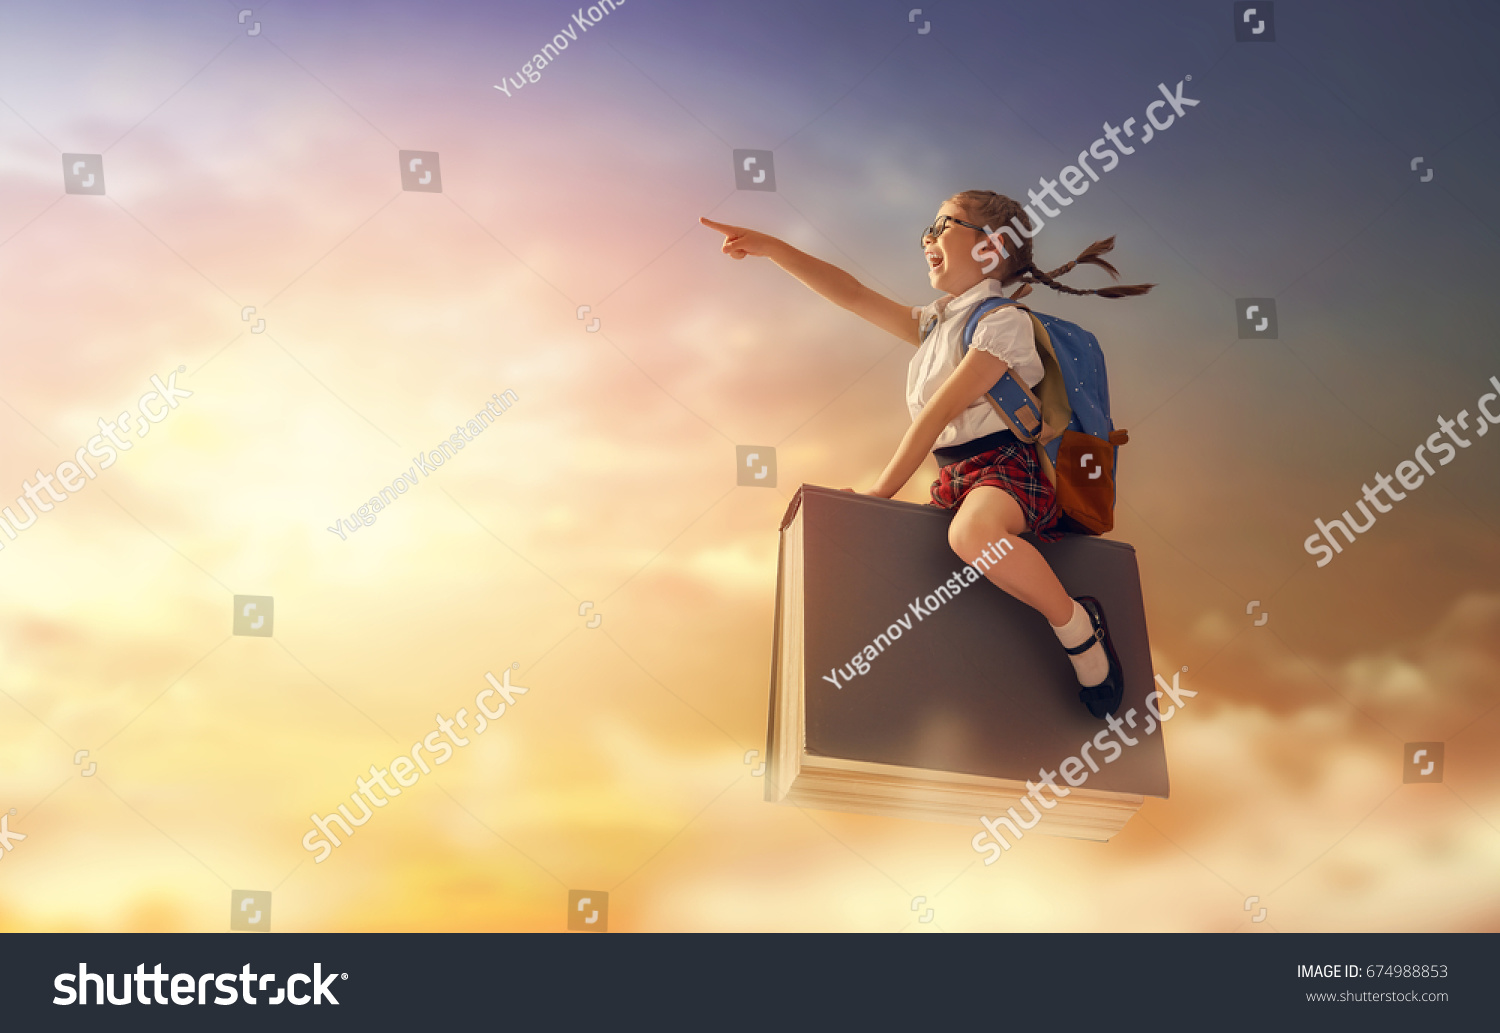 Back to school! Happy cute industrious child flying on the book on background of sunset sky. Concept of education and reading. The development of the imagination. #674988853